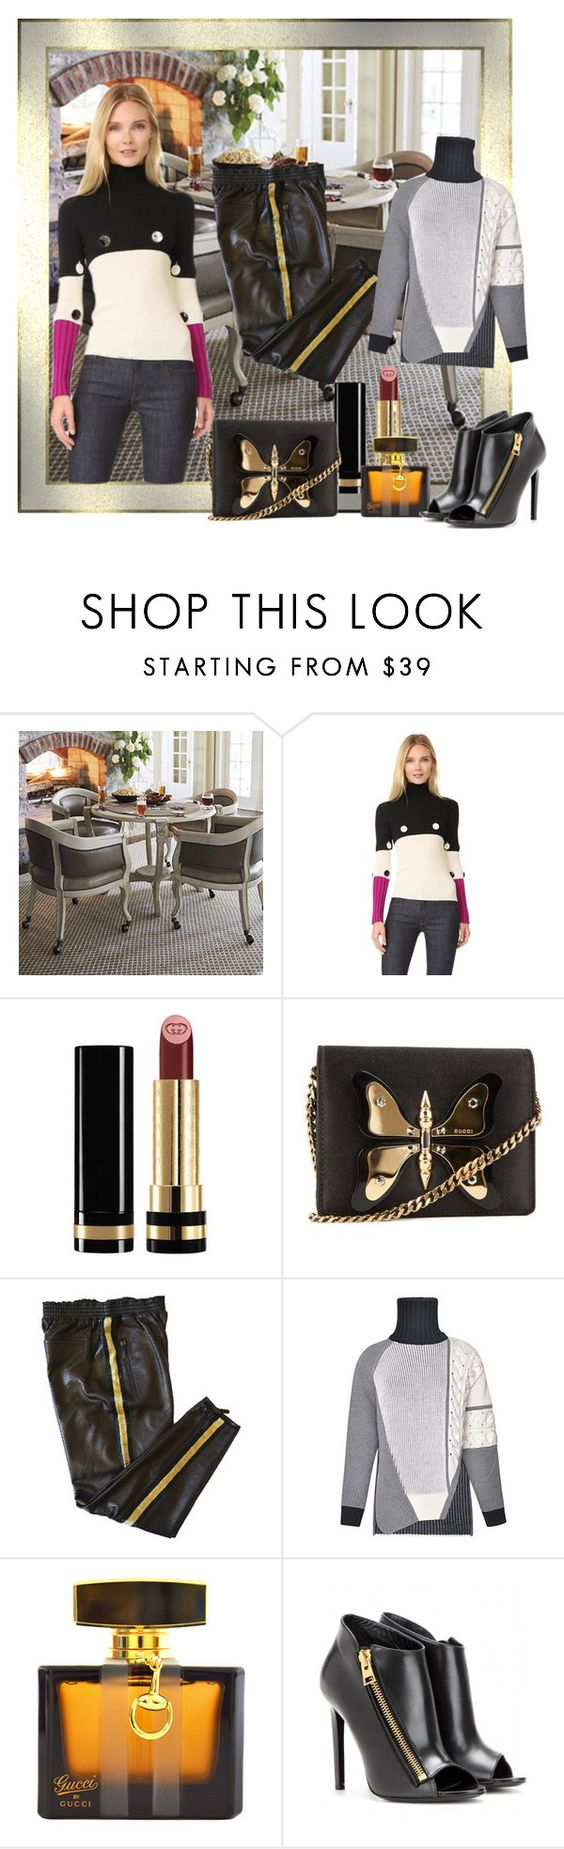 """""""comfy"""" by snowmoon ❤ liked on Polyvore featuring Frontgate, Salvatore Ferragamo, Gucci, Emilio Pucci, Prabal Gurung and Tom Ford"""